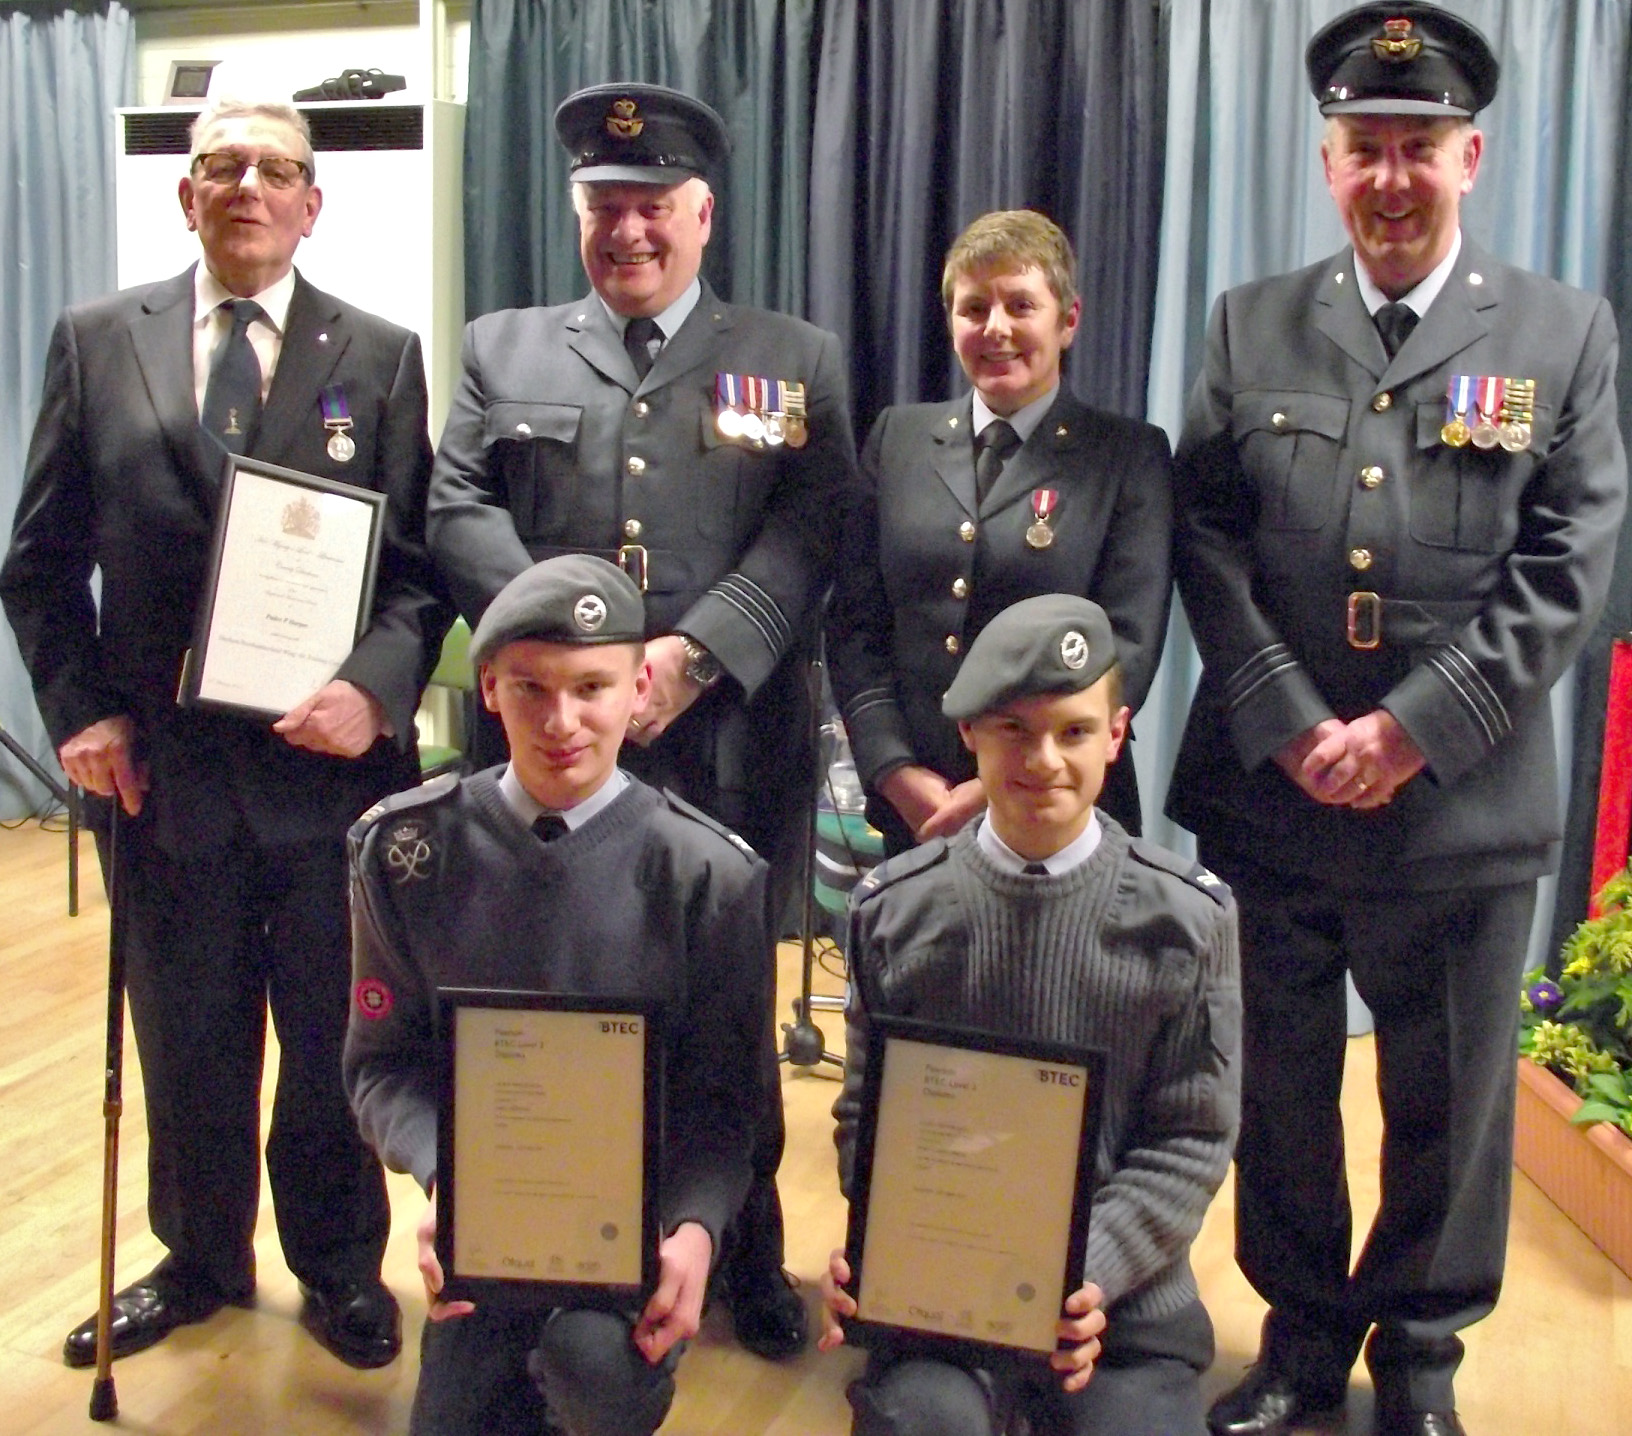 Aycliffe Cadets and Staff Earn Awards